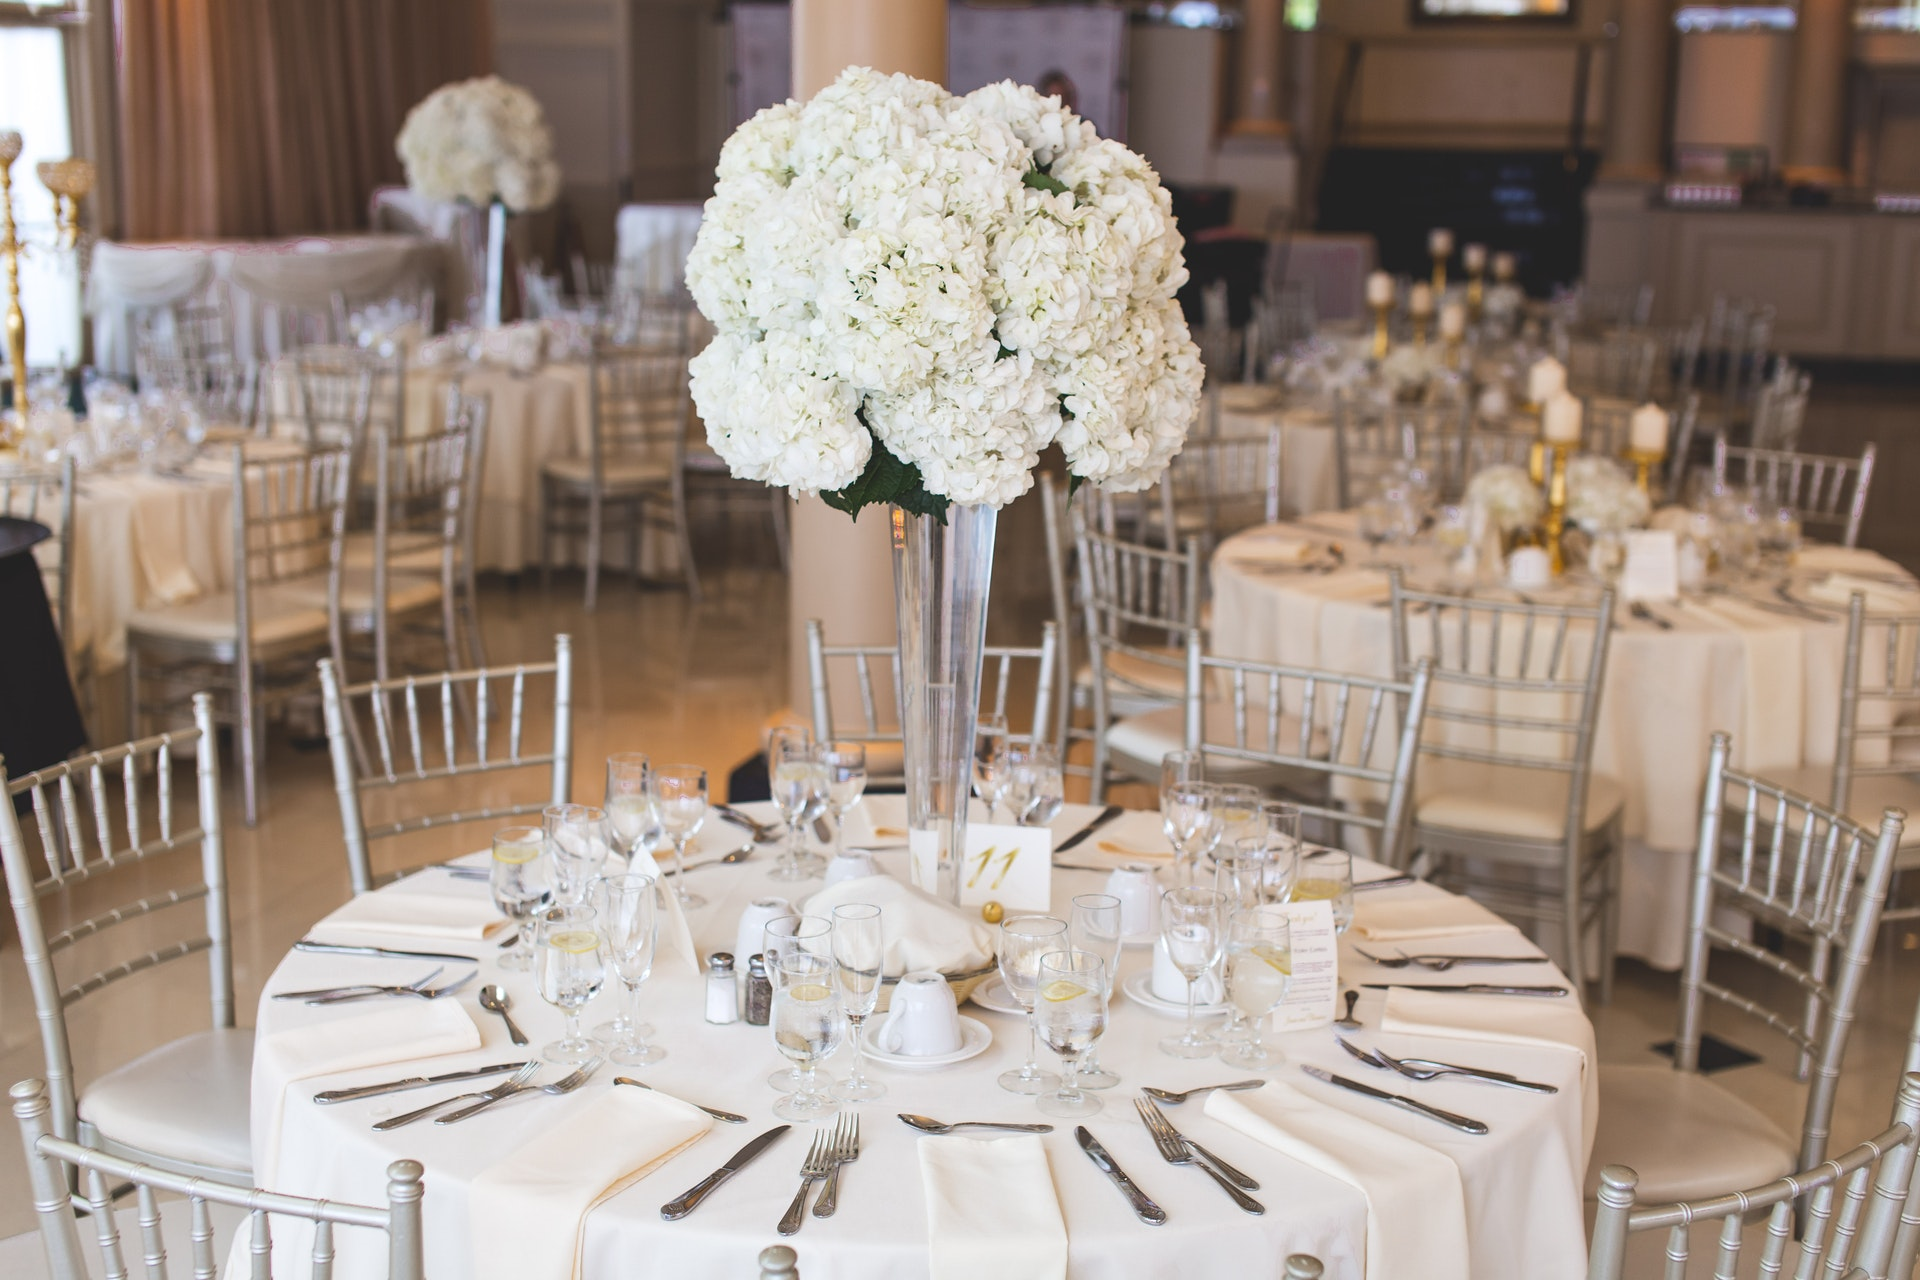 5 Best Event Management Company in Leeds